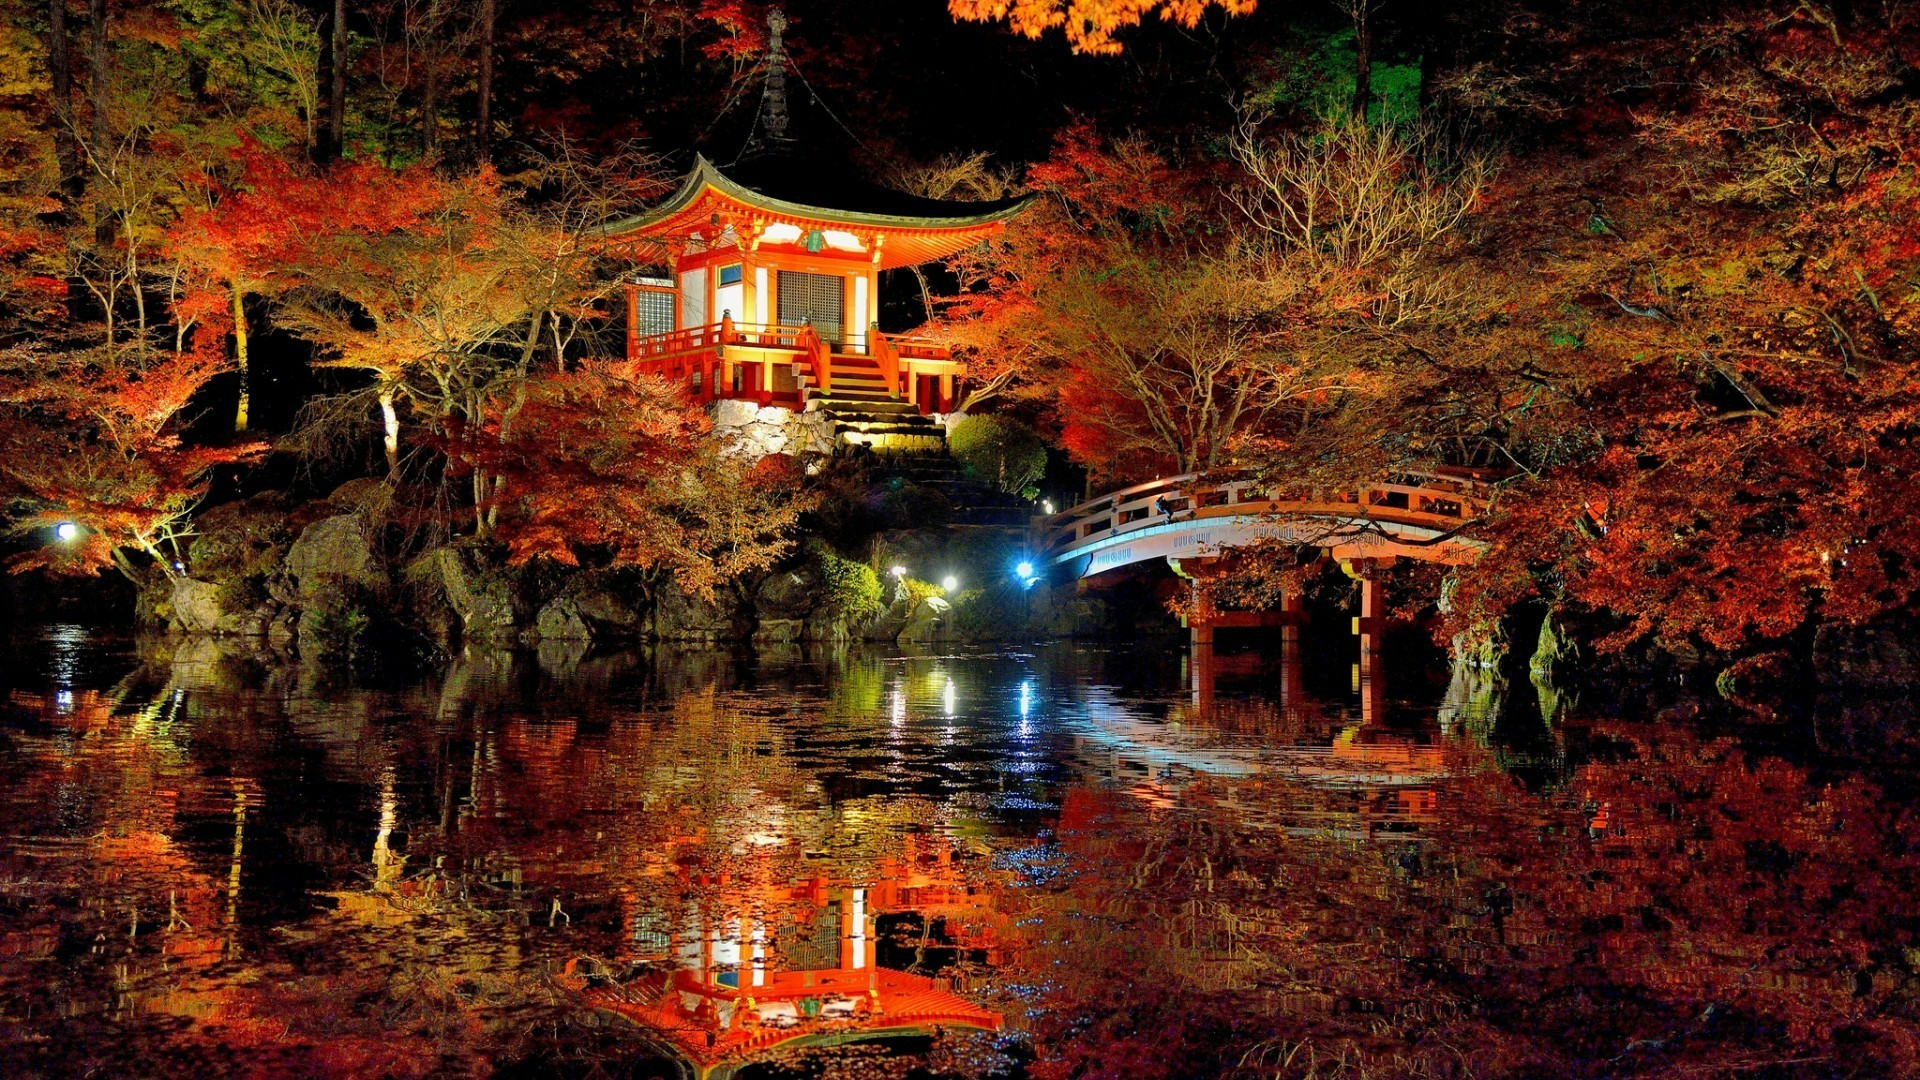 Res: 1920x1080, Autumn Night Over Daigo-ji Temple, Kyoto, Japan Wallpaper | Wallpaper  Studio 10 | Tens of thousands HD and UltraHD wallpapers for Android,  Windows and Xbox